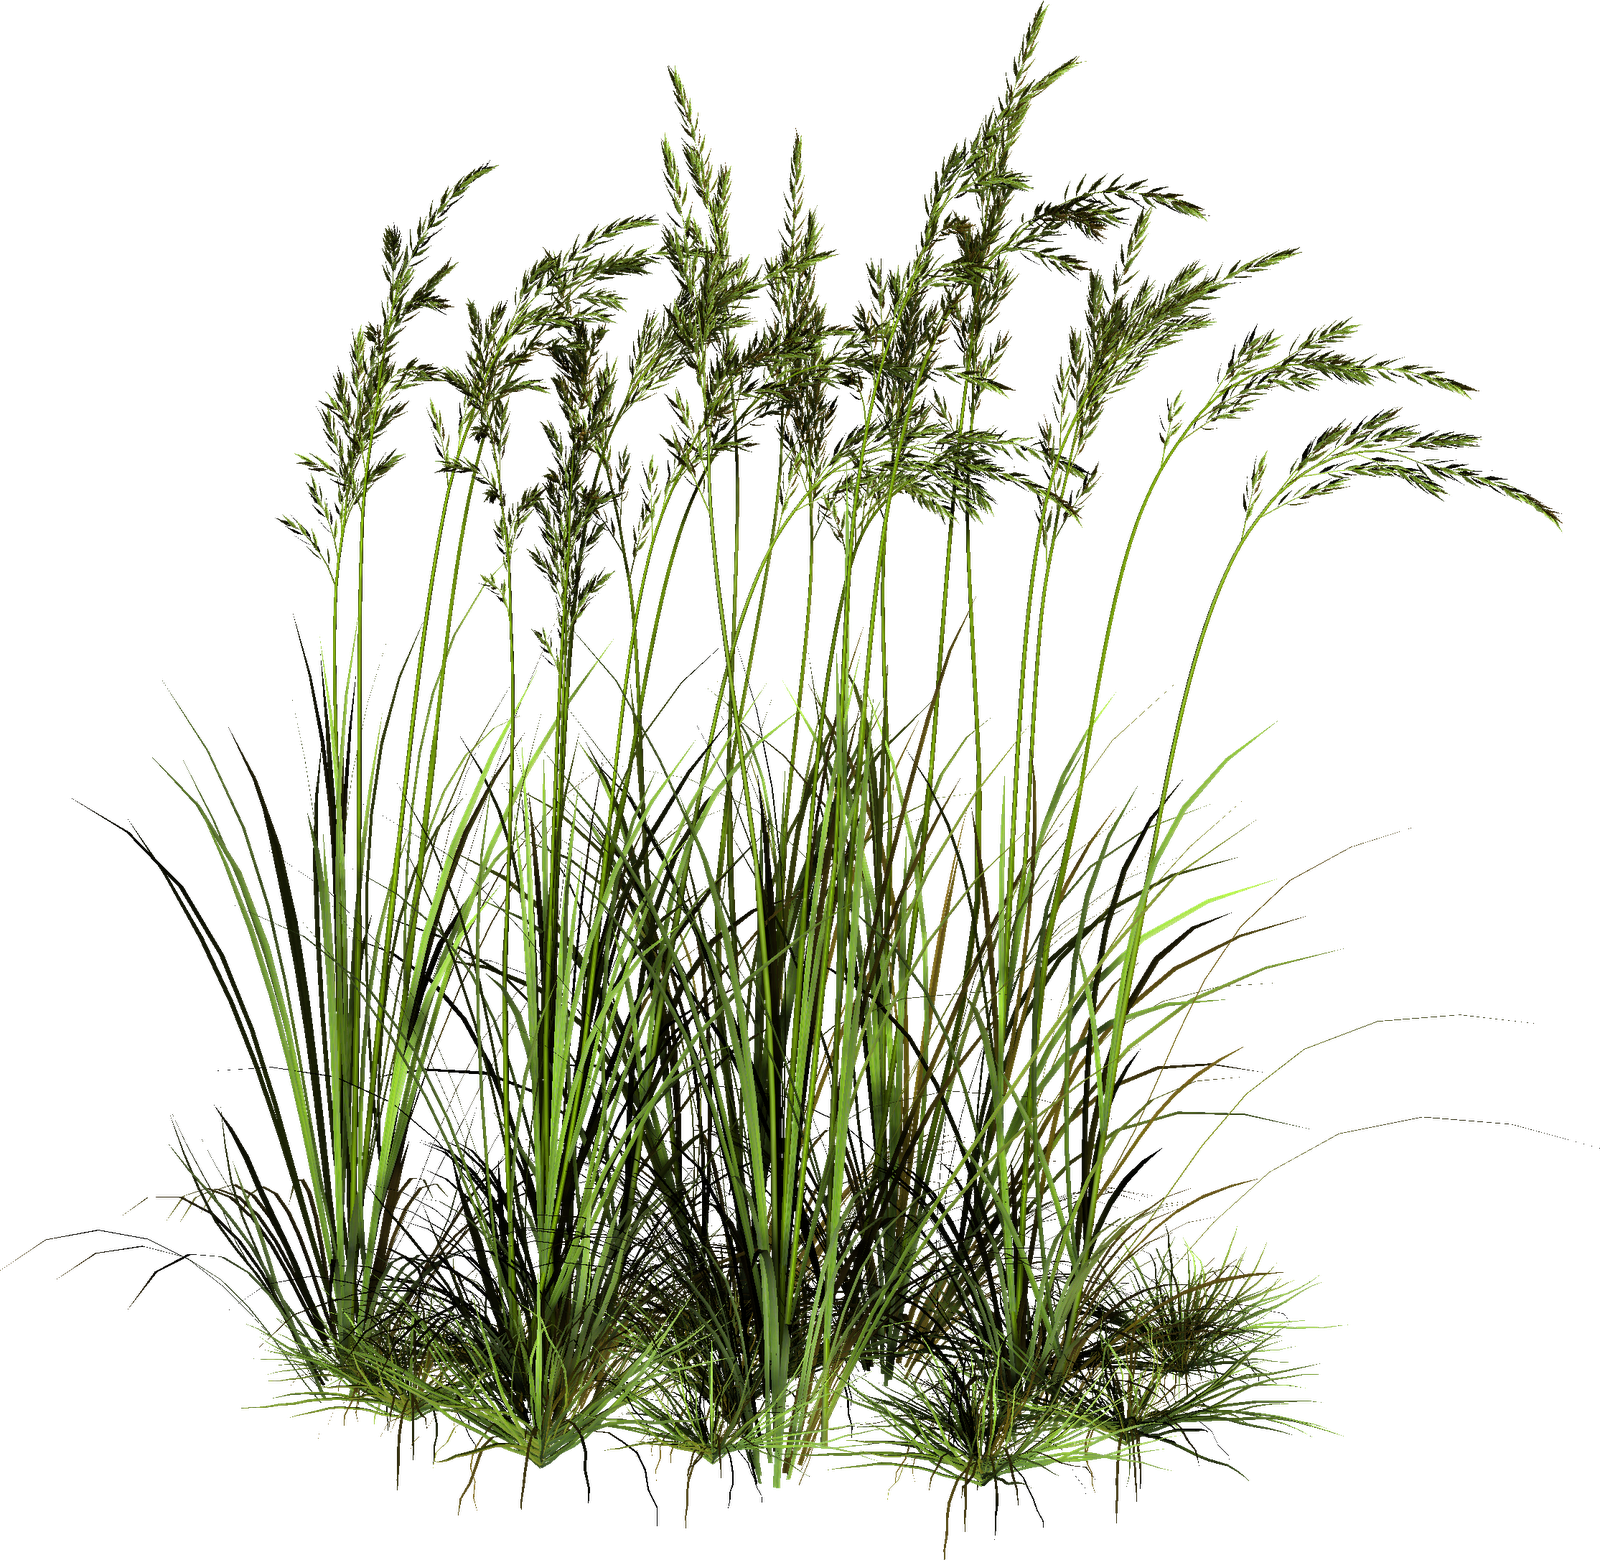 Tall Grass Png Pic image #44175